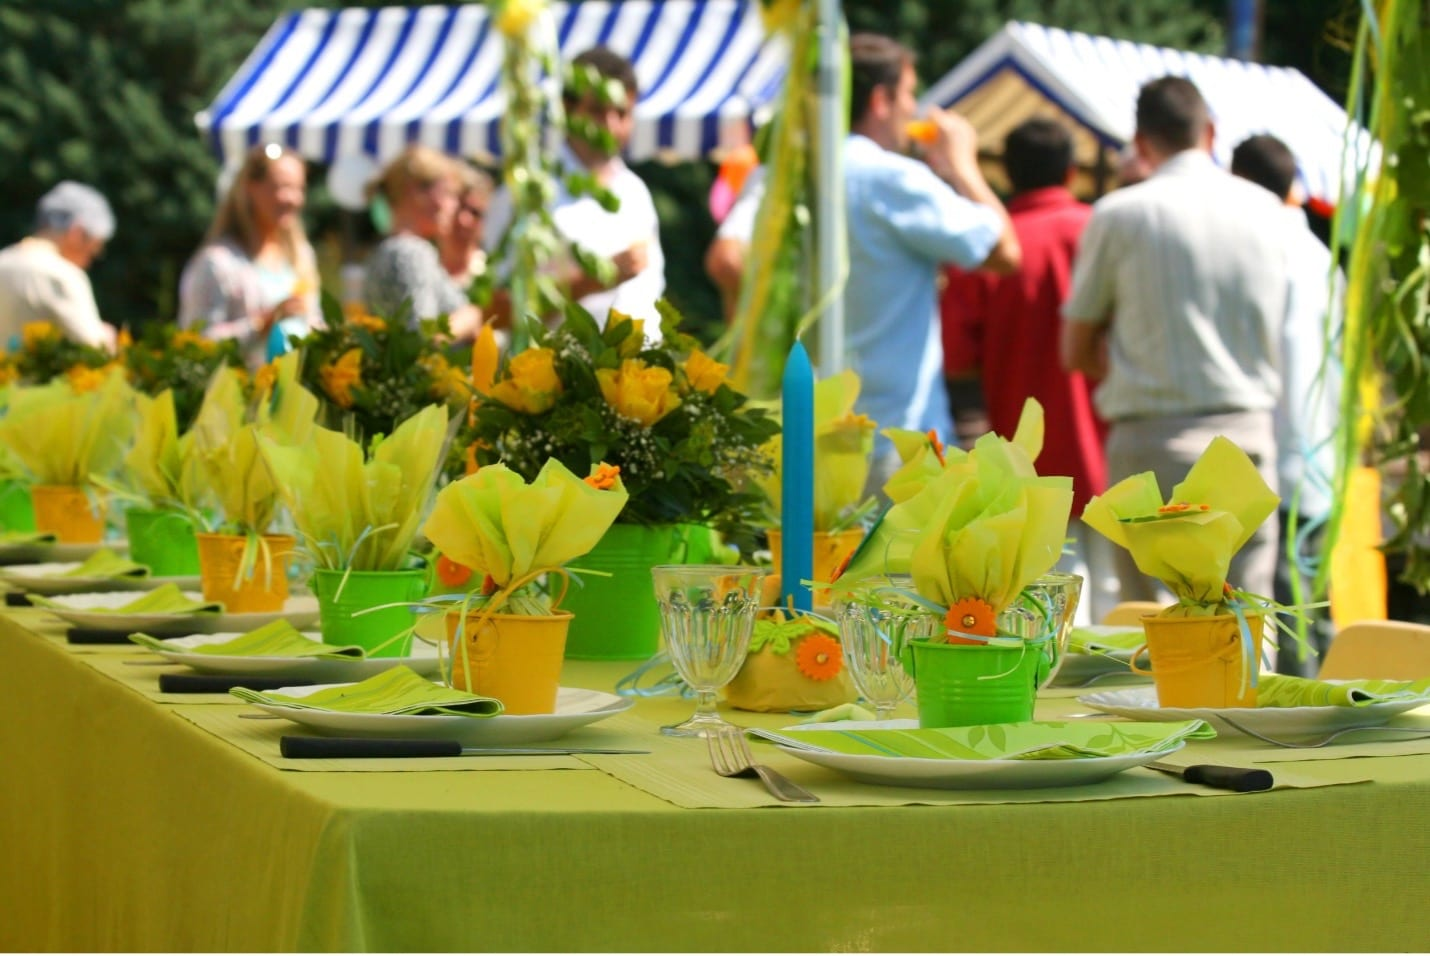 events for weddings, birthdays and other celebrations